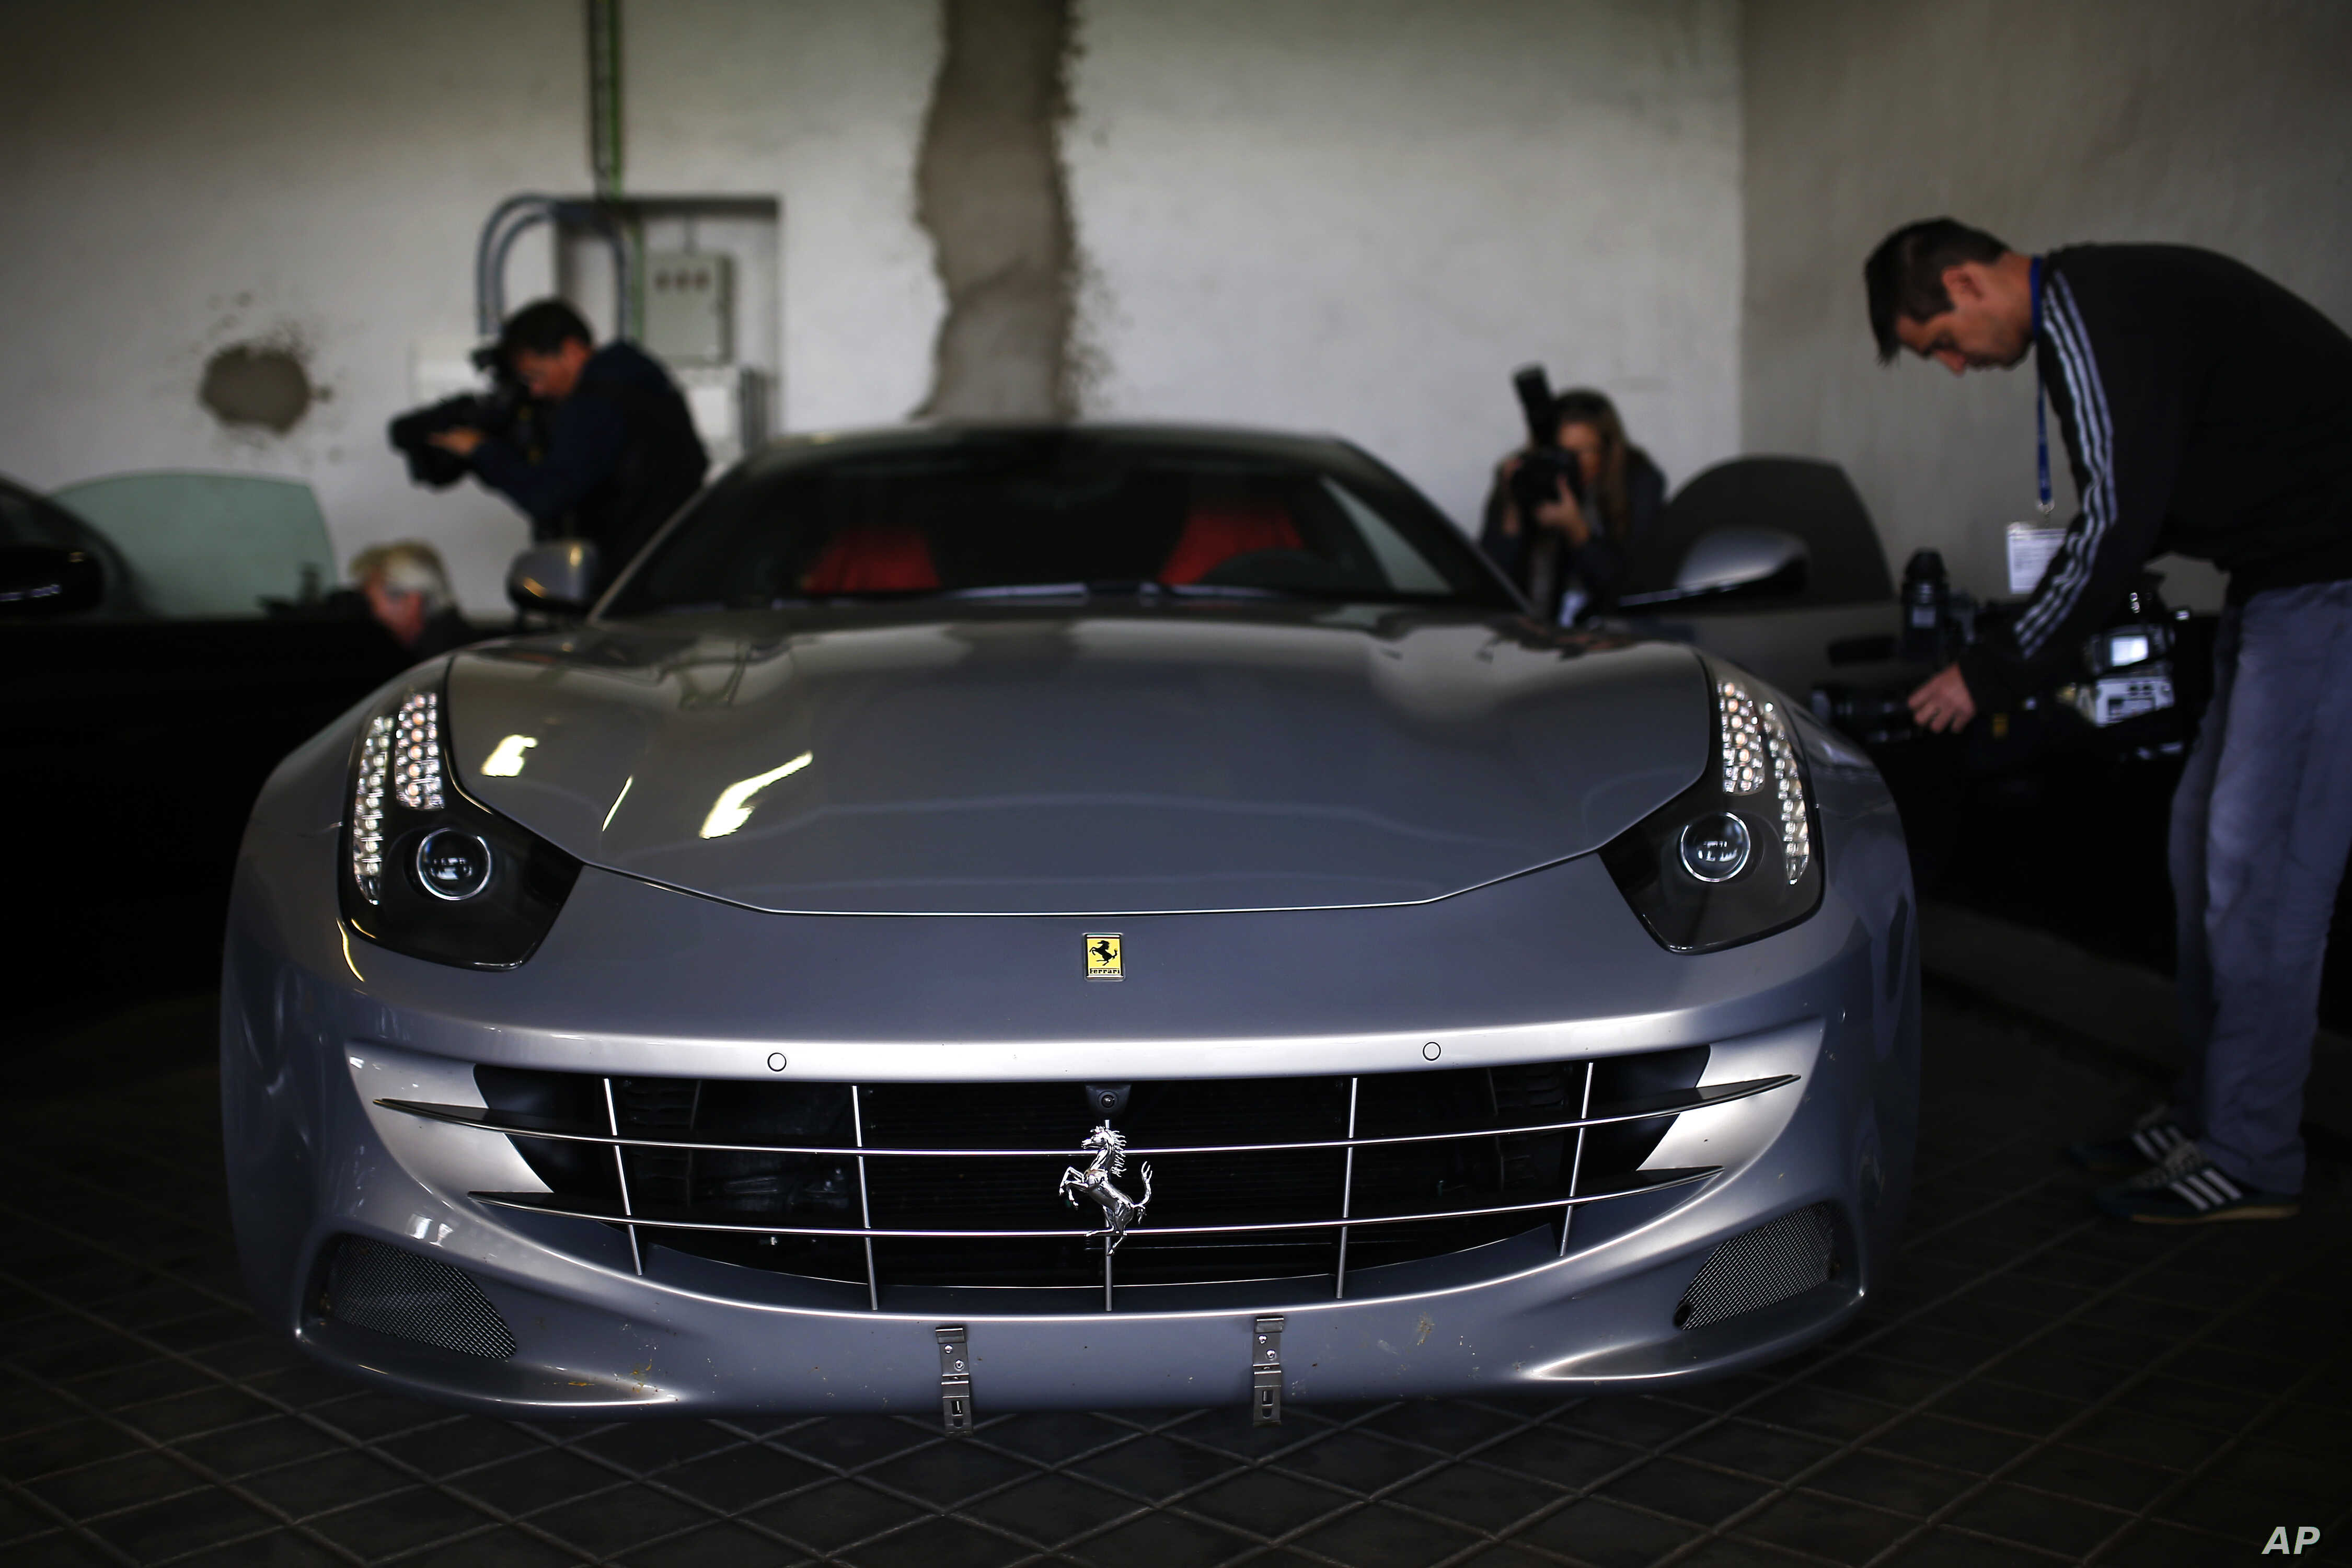 Spain To Auction 2 Ferraris Belonging To Ex King Voice Of America